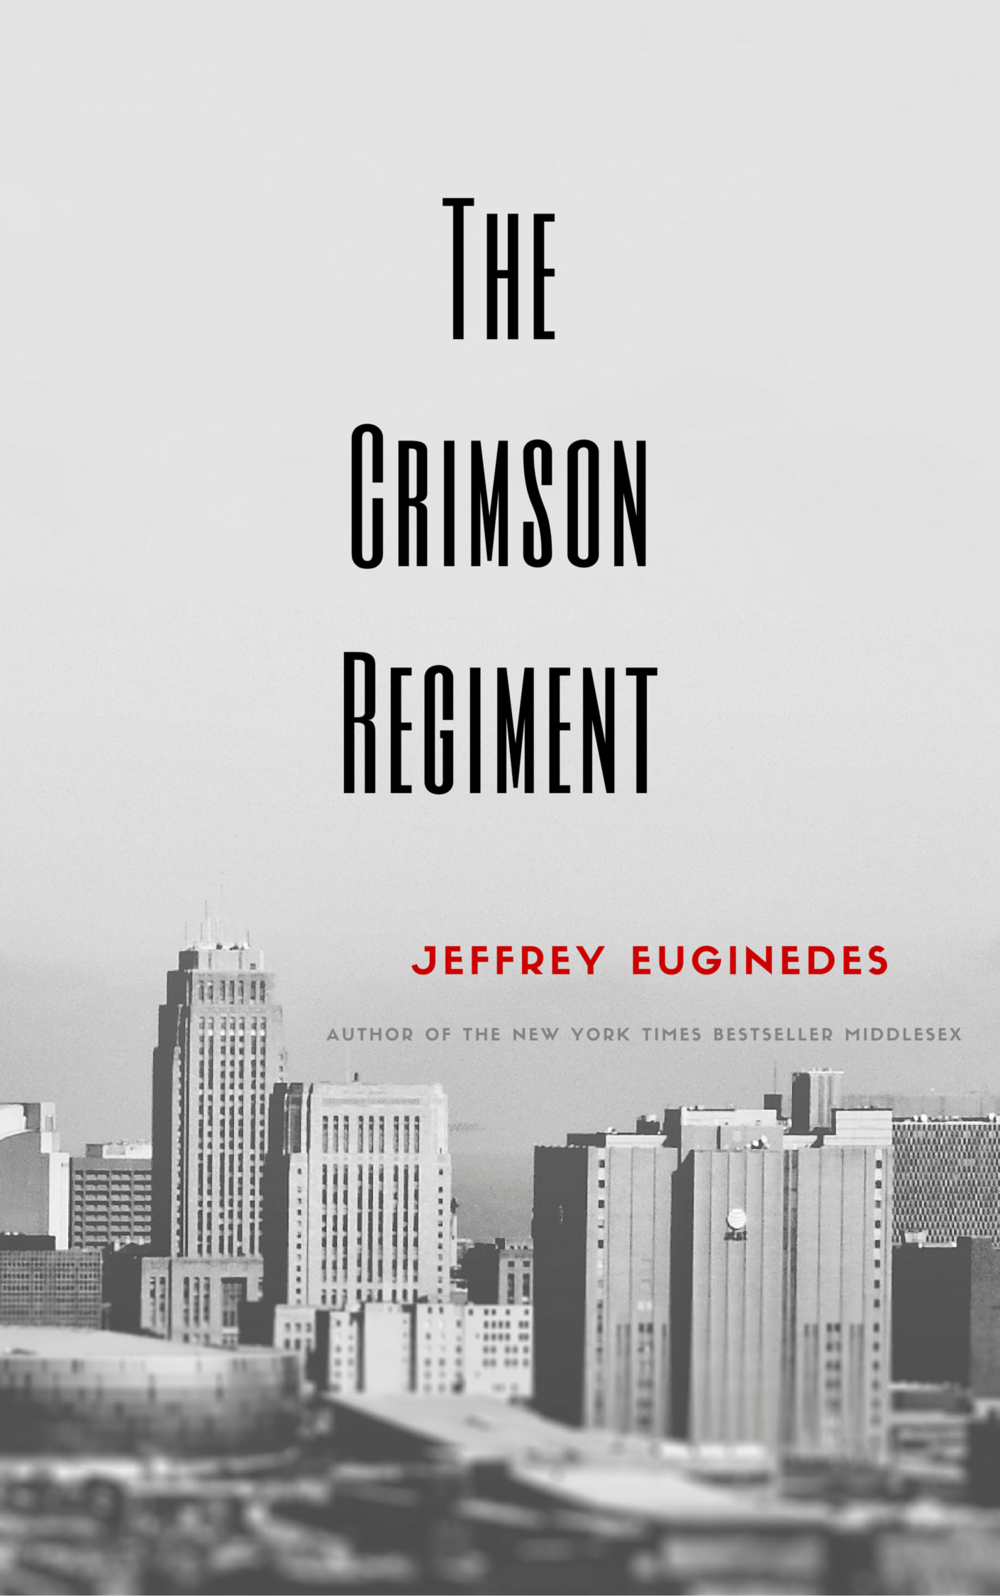 The Crimson Regiment, Eugenides fourth novel, is expected to explore themes of modern isolation in a suburban setting. A family drama which looks inwards and backwards.